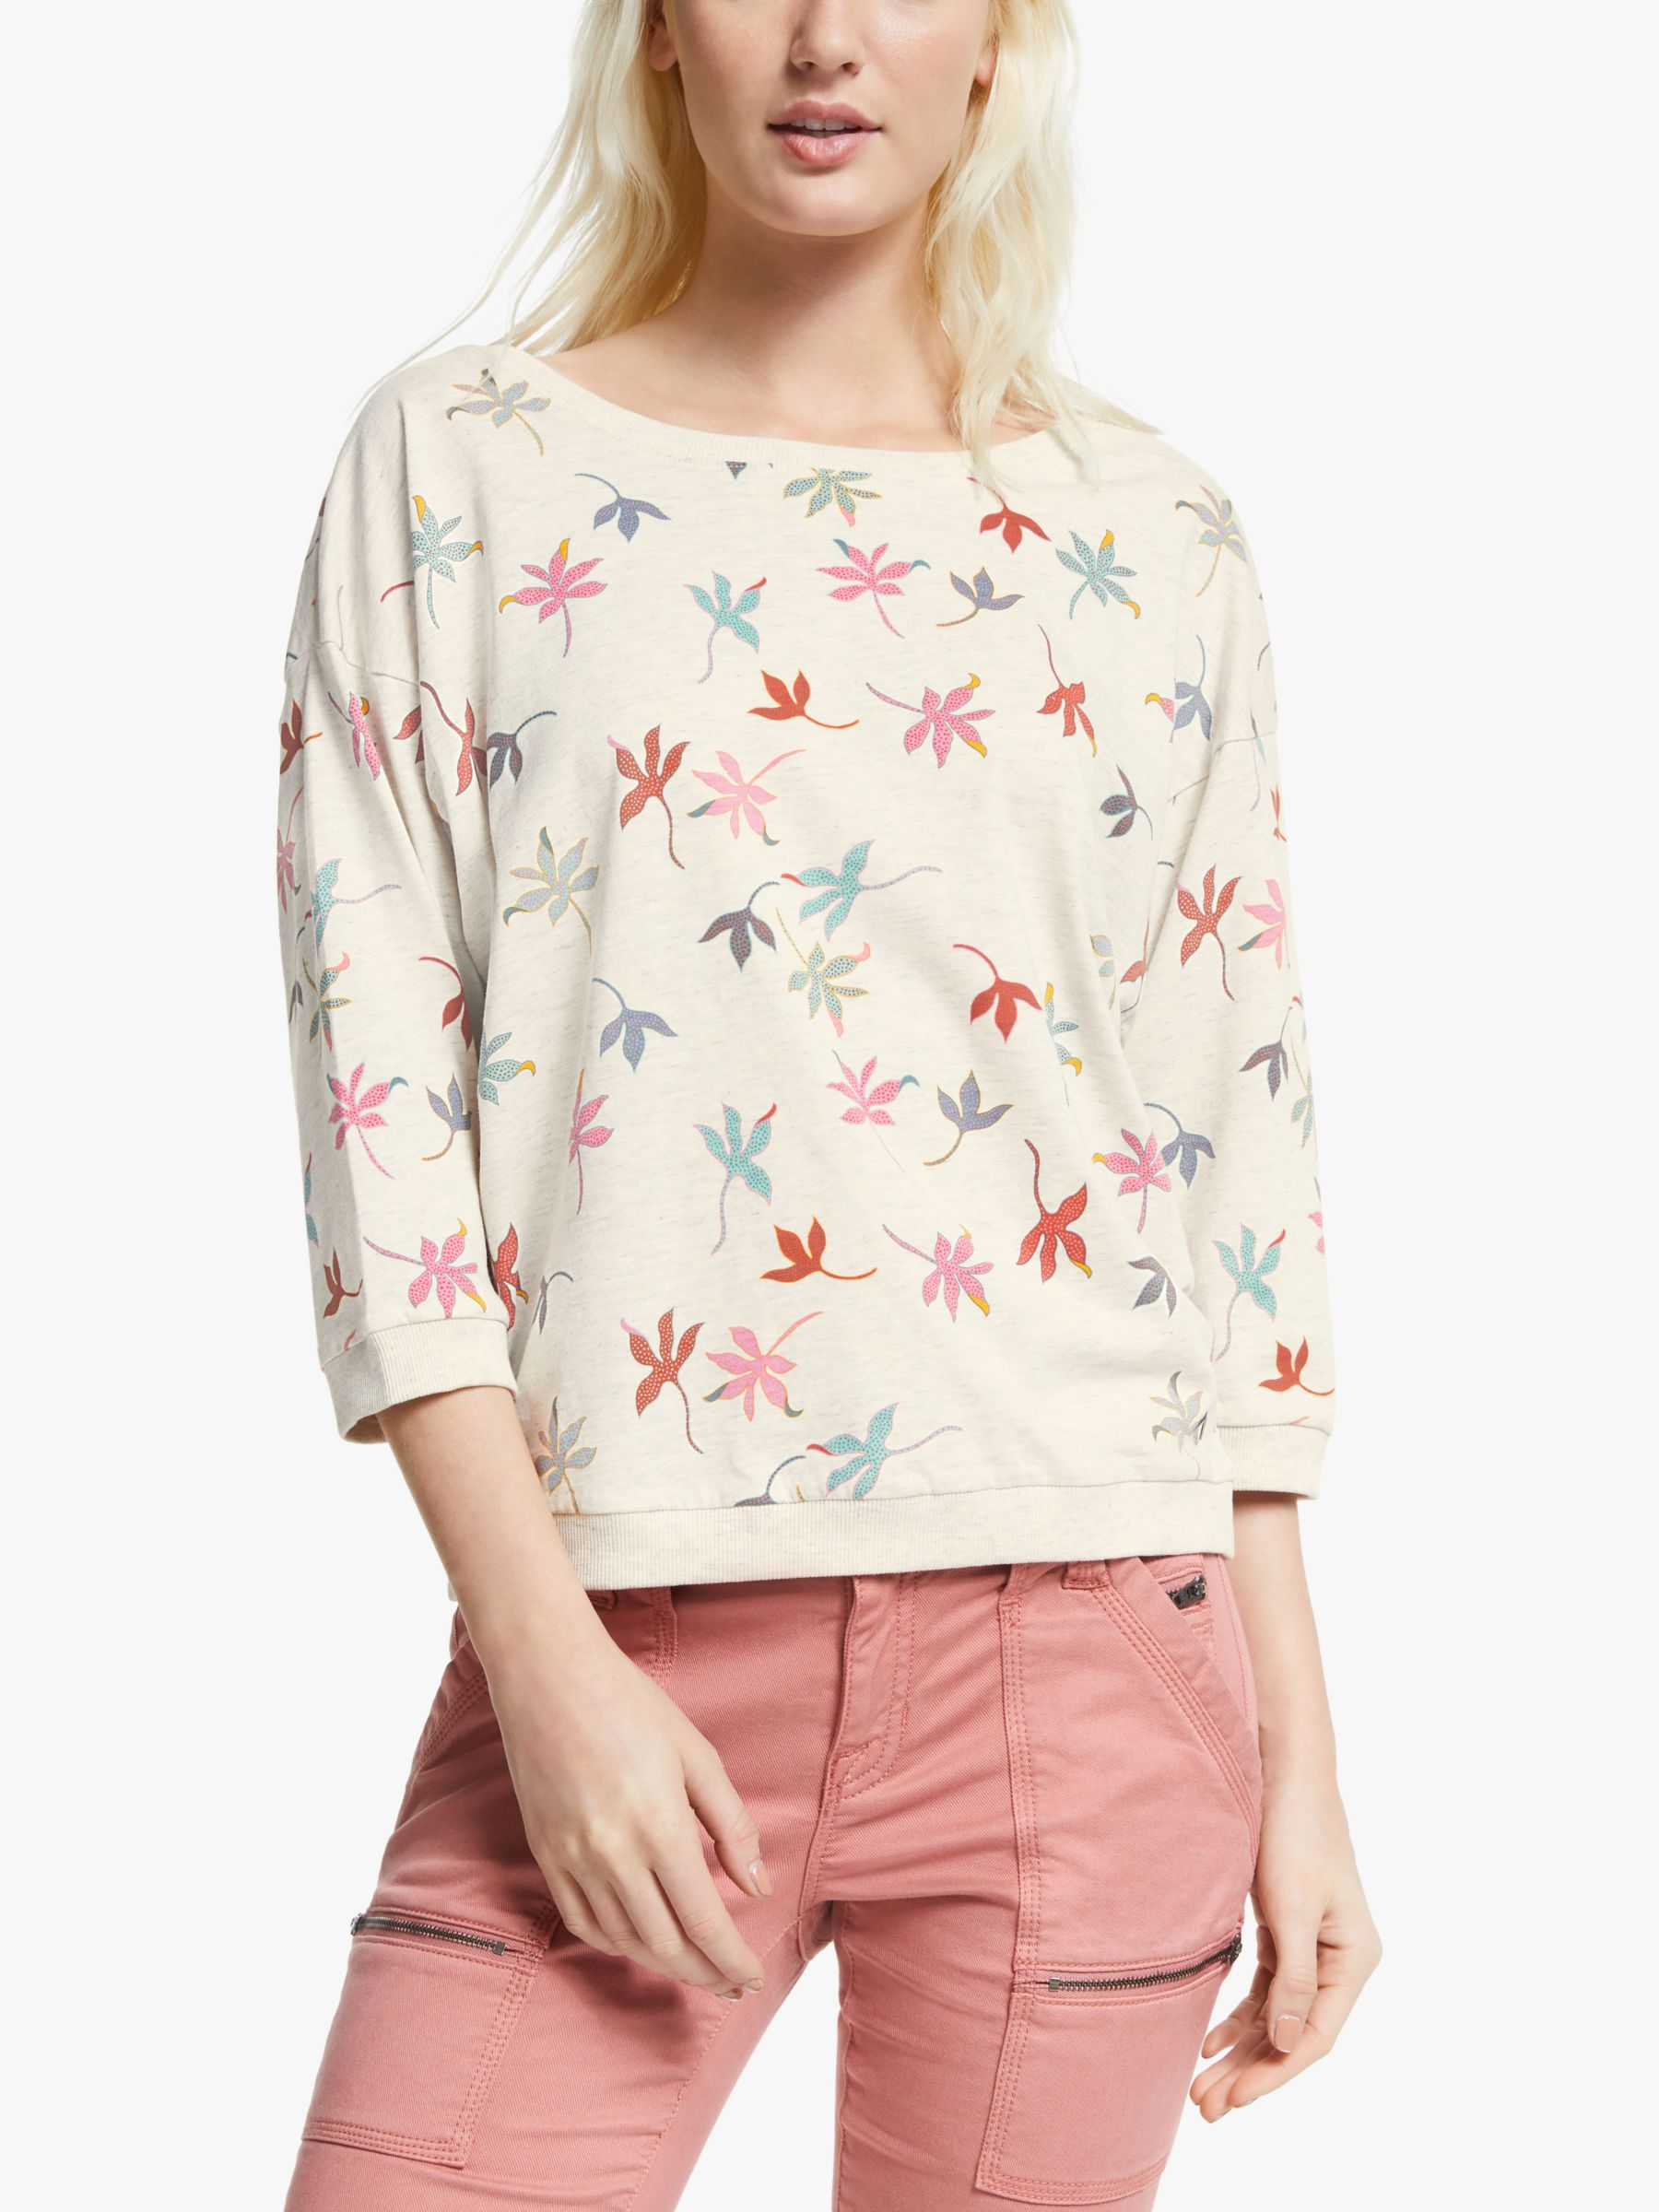 Numph Numph Brighed Leaf Top, Cloud Dancer